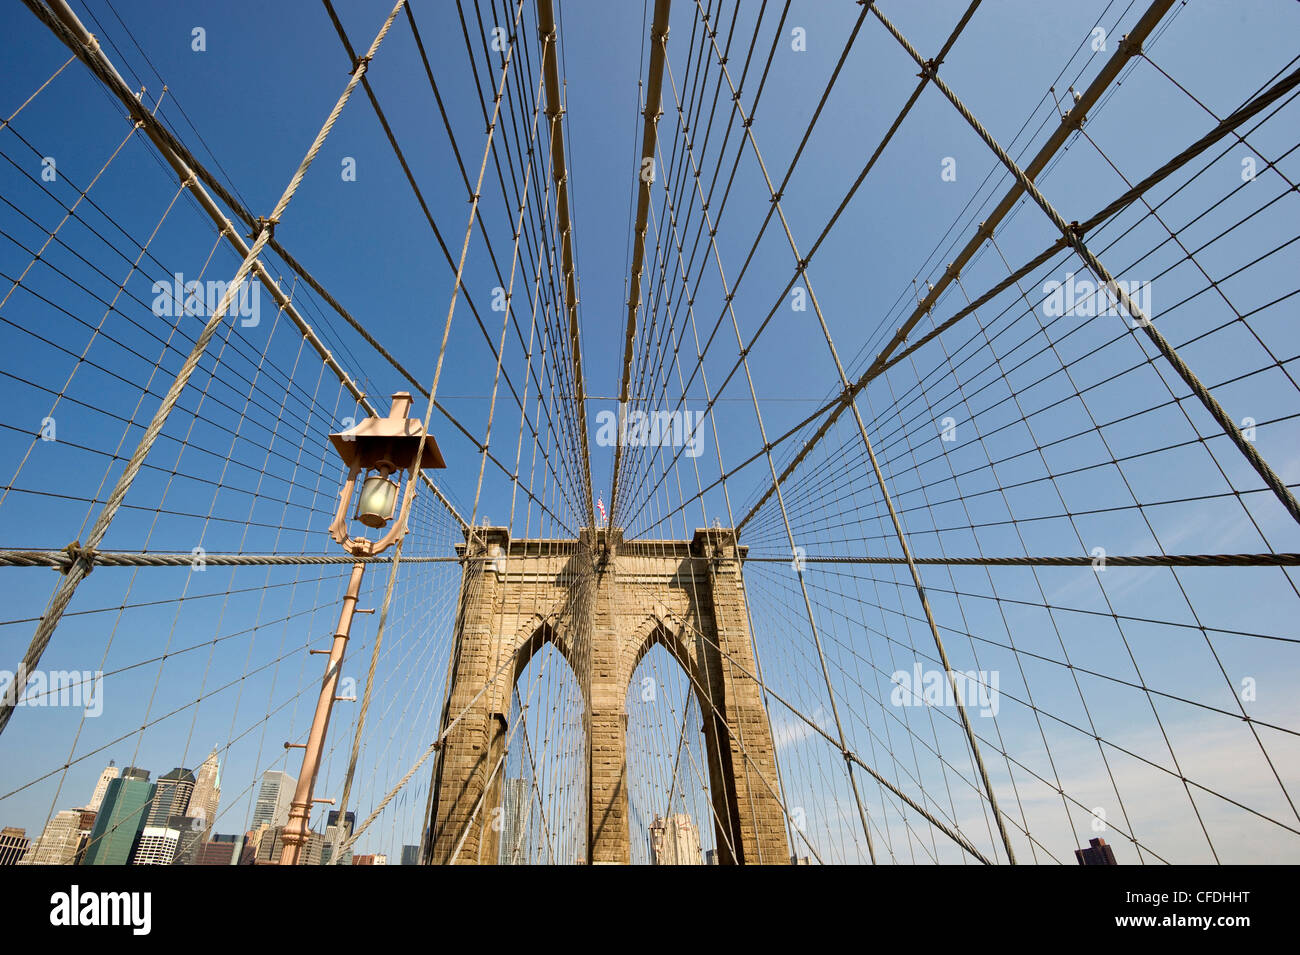 Ponte di Brooklyn a luce solare, Manhattan, New York, USA, America Immagini Stock